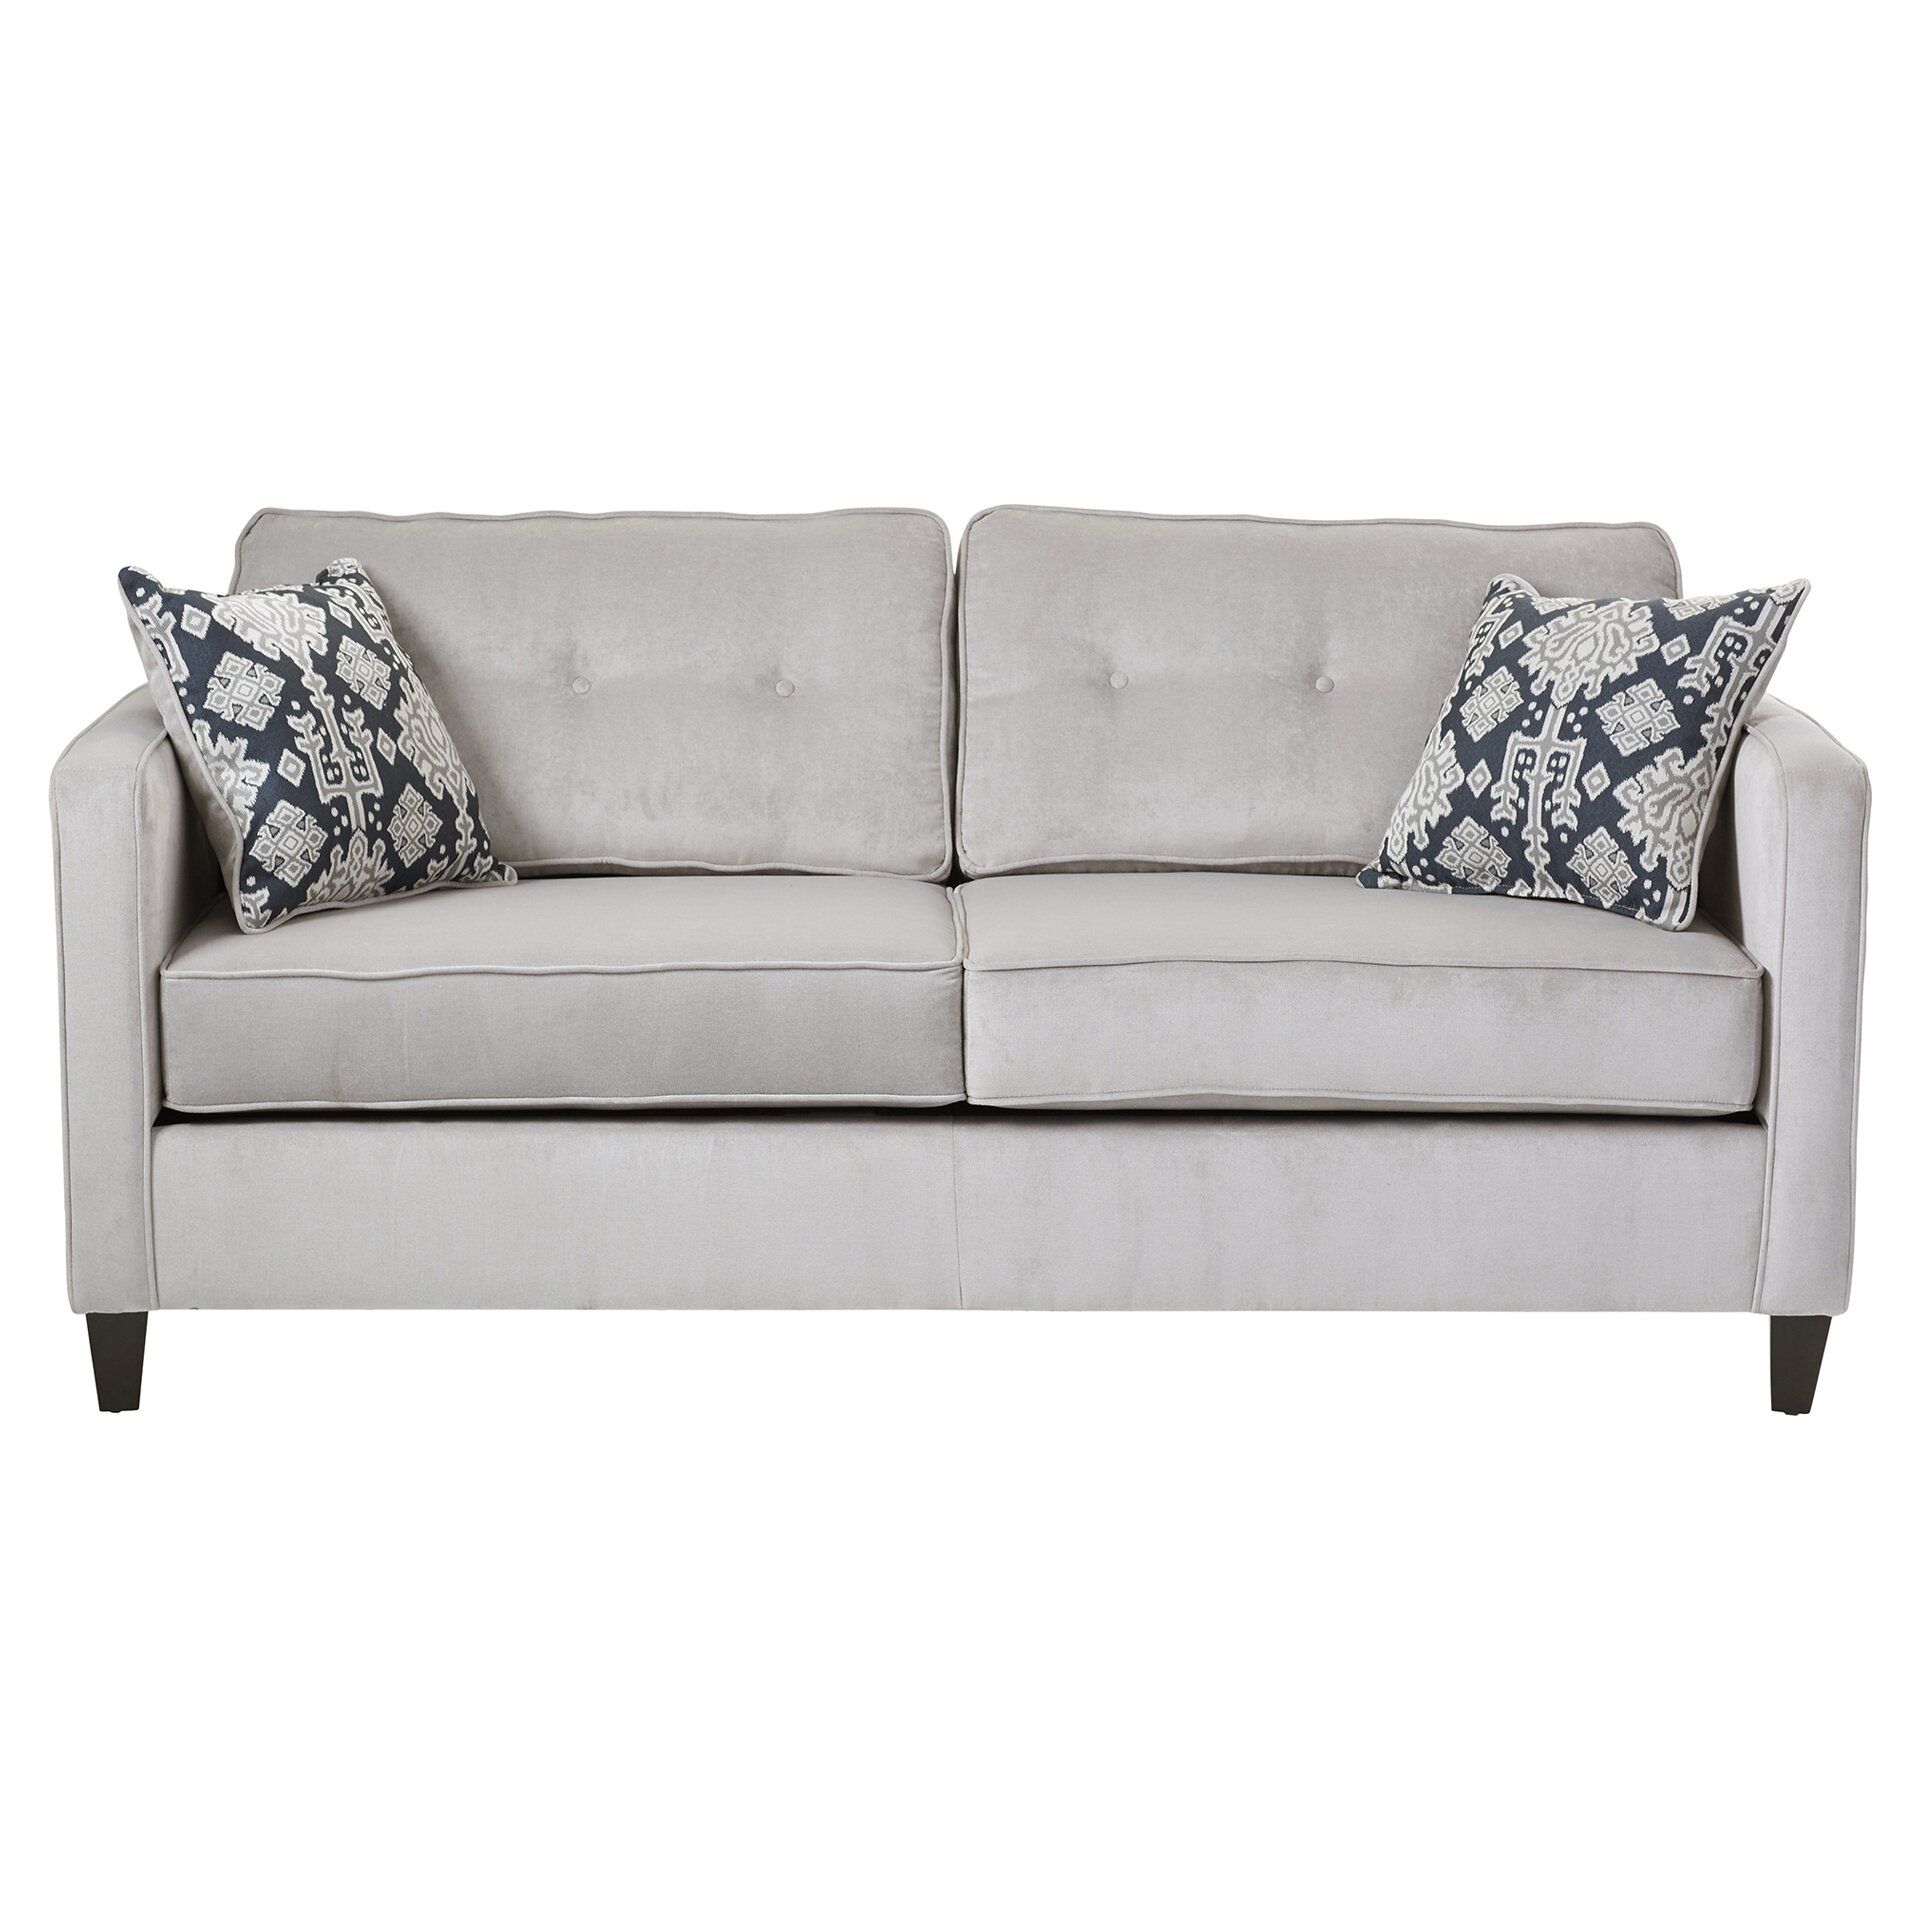 Simplicity sofas for sale - Serta Upholstery Cypress Sofa